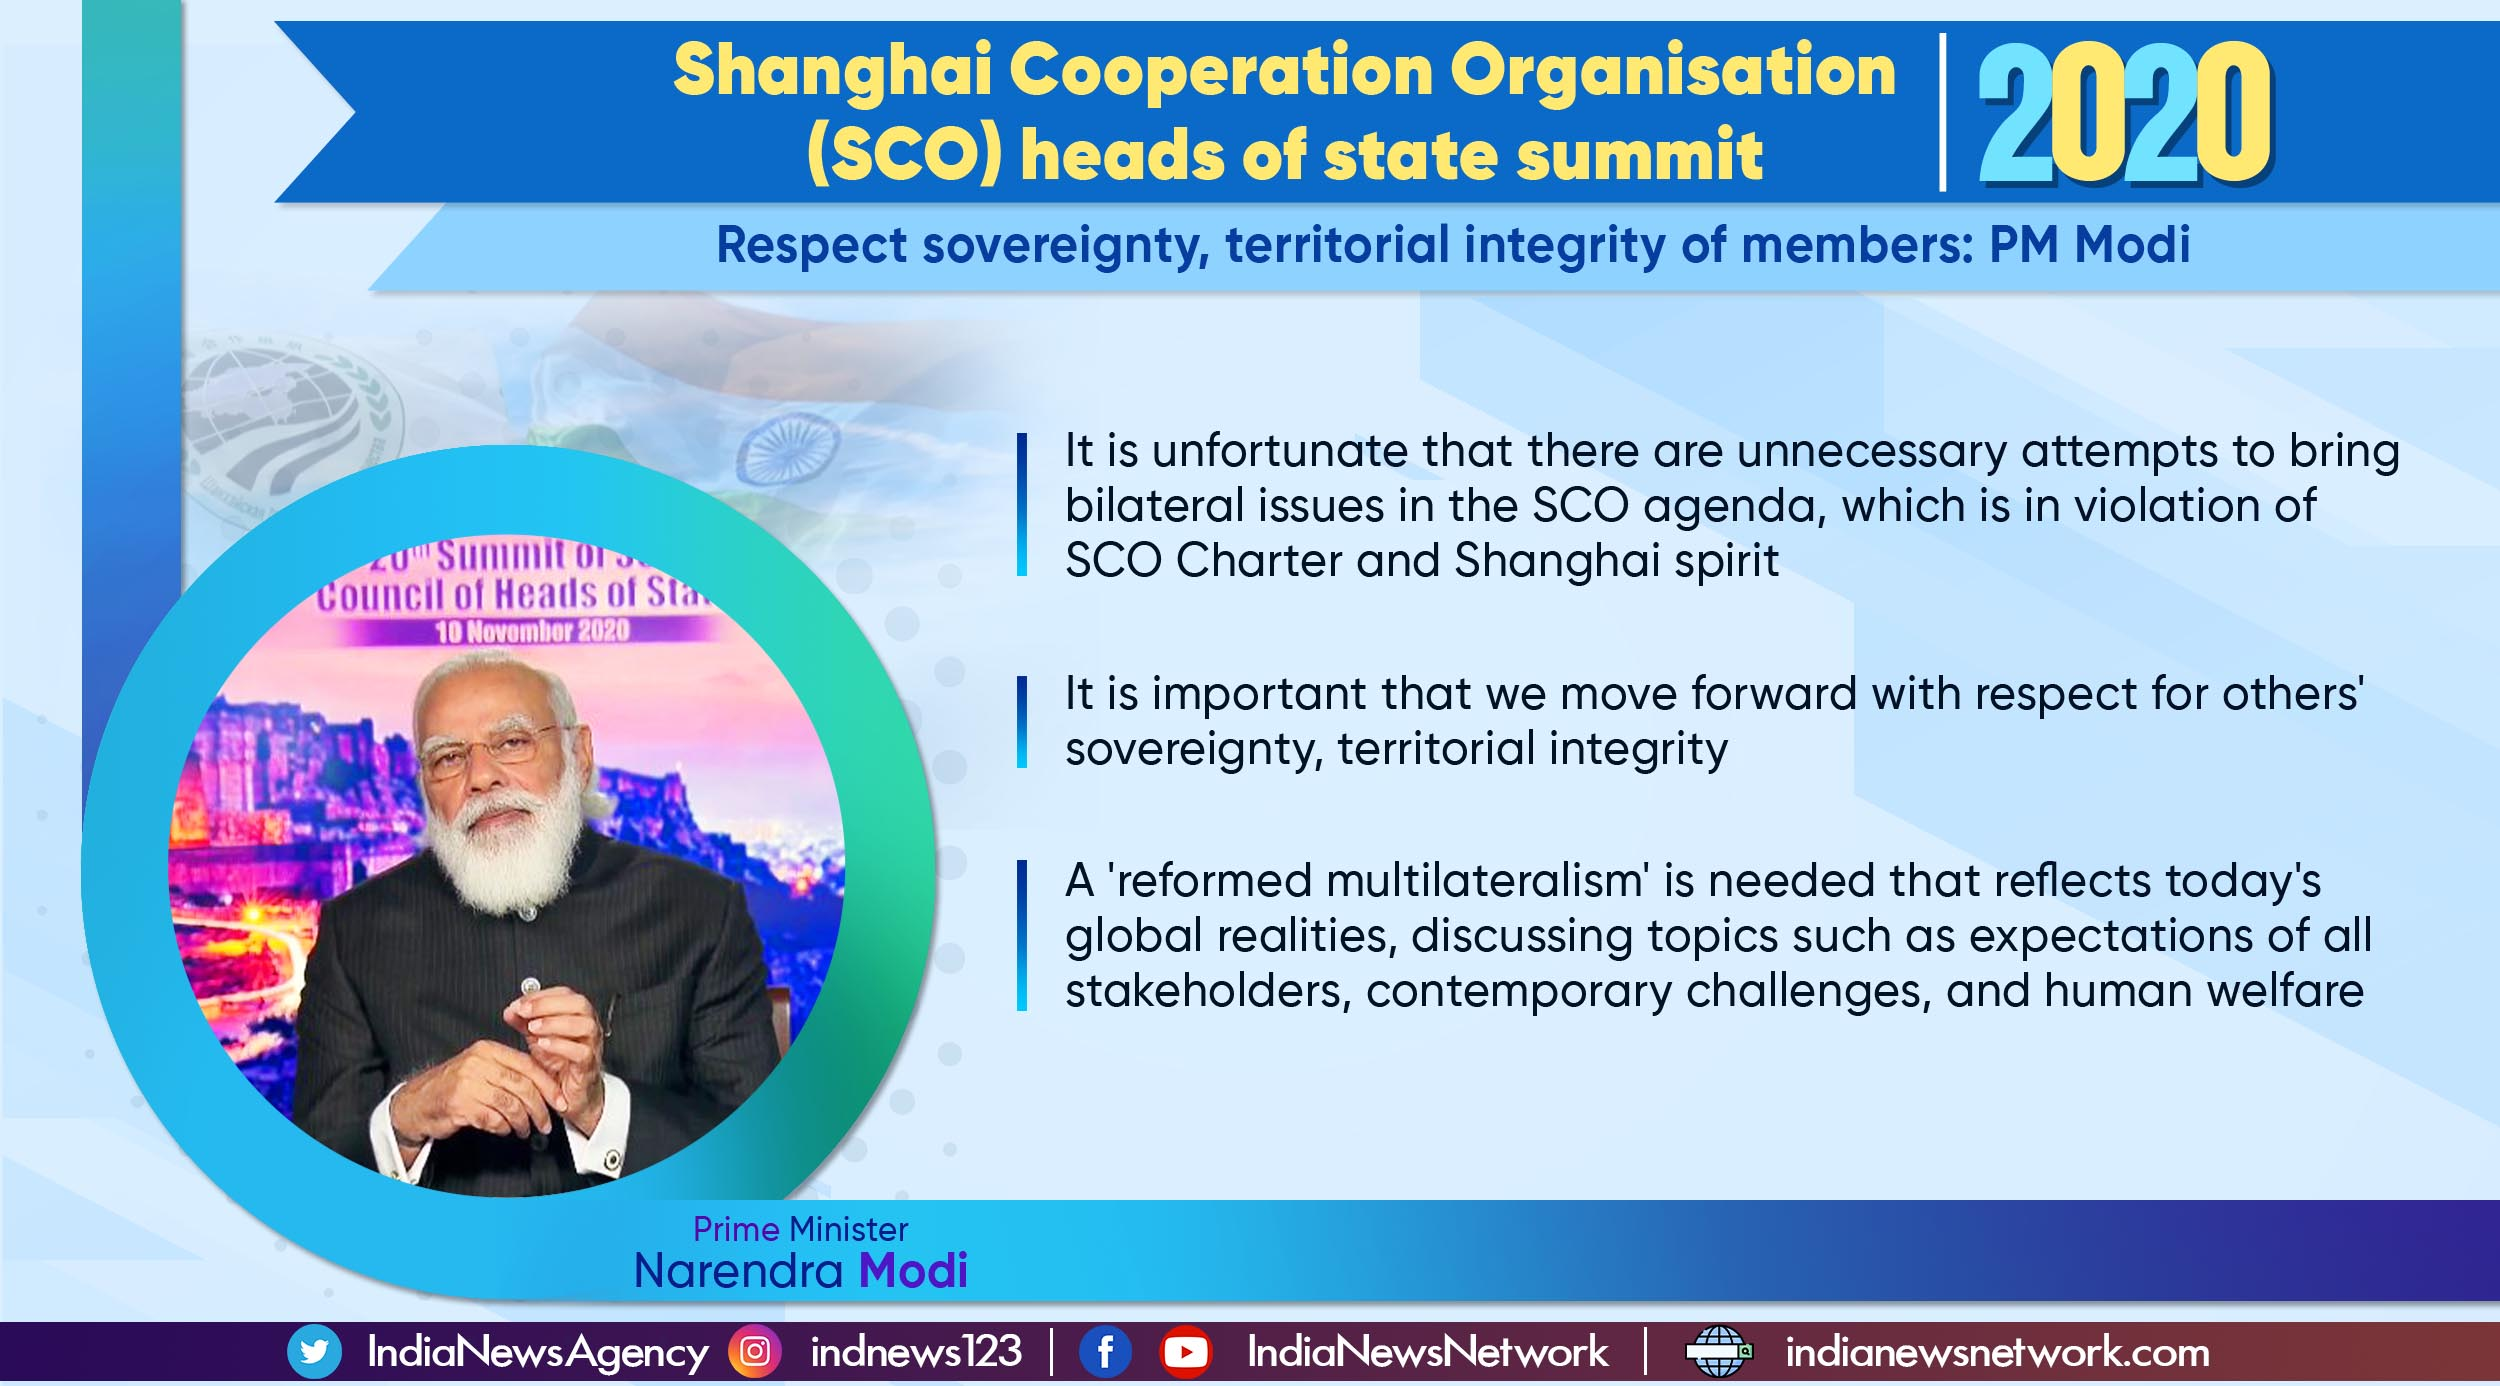 Key points from PM Modi's address at the SCO heads of state summit